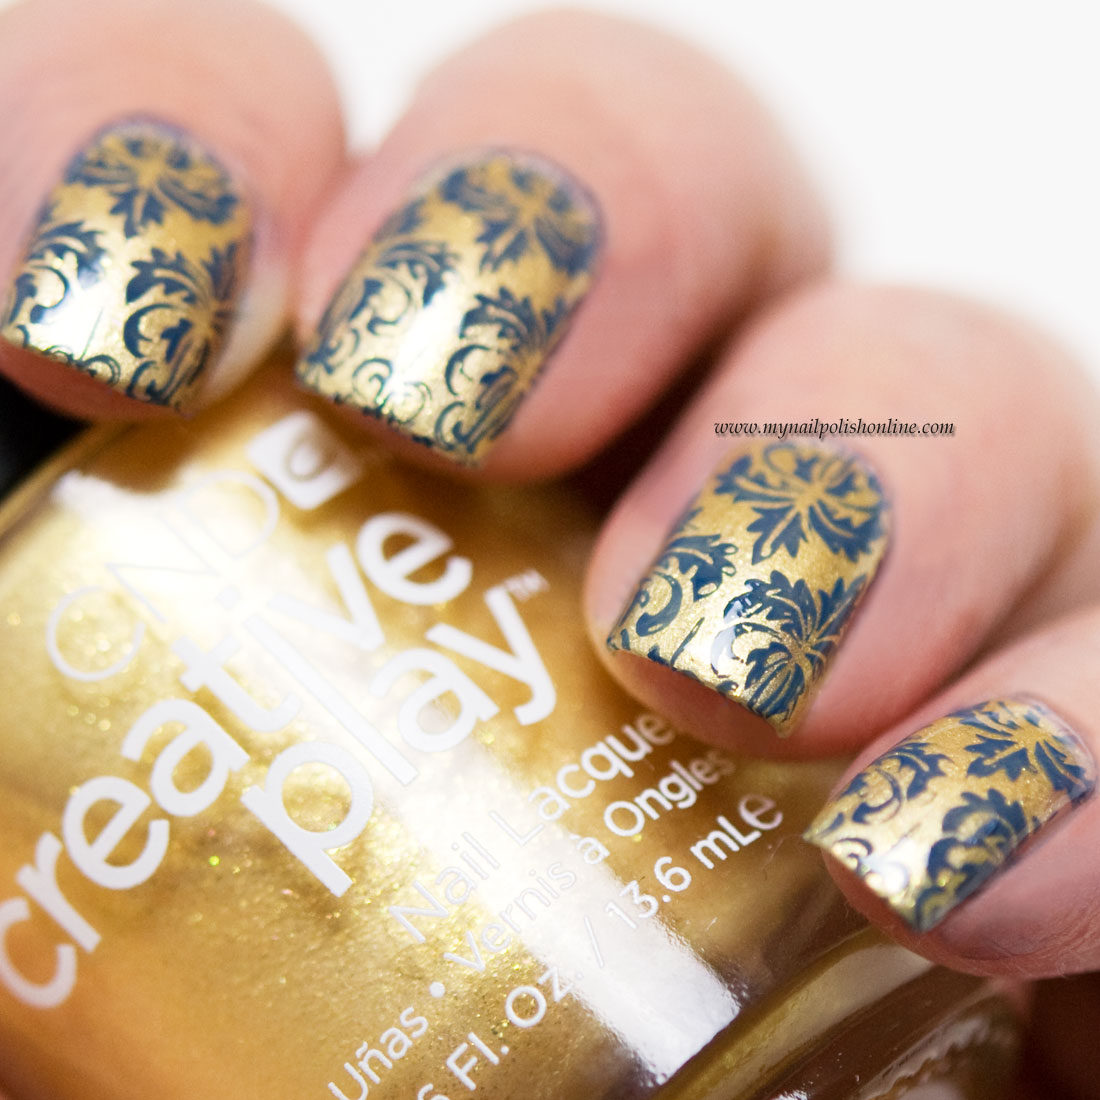 Nail art with stamping